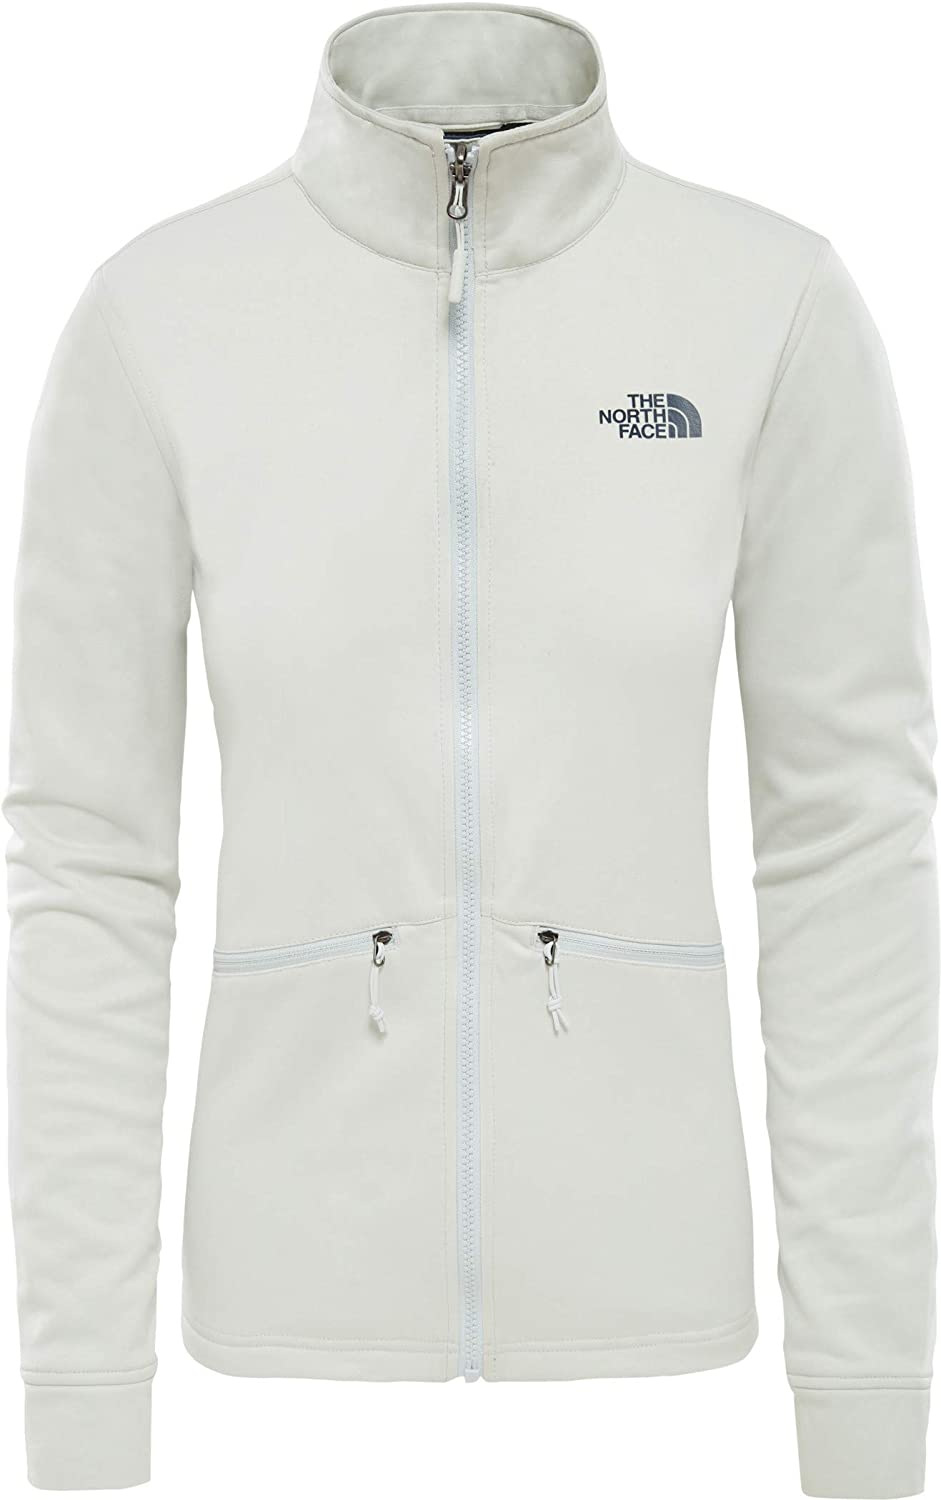 34fc678dde44 The North Face Women s Tanken Triclimate Jacket